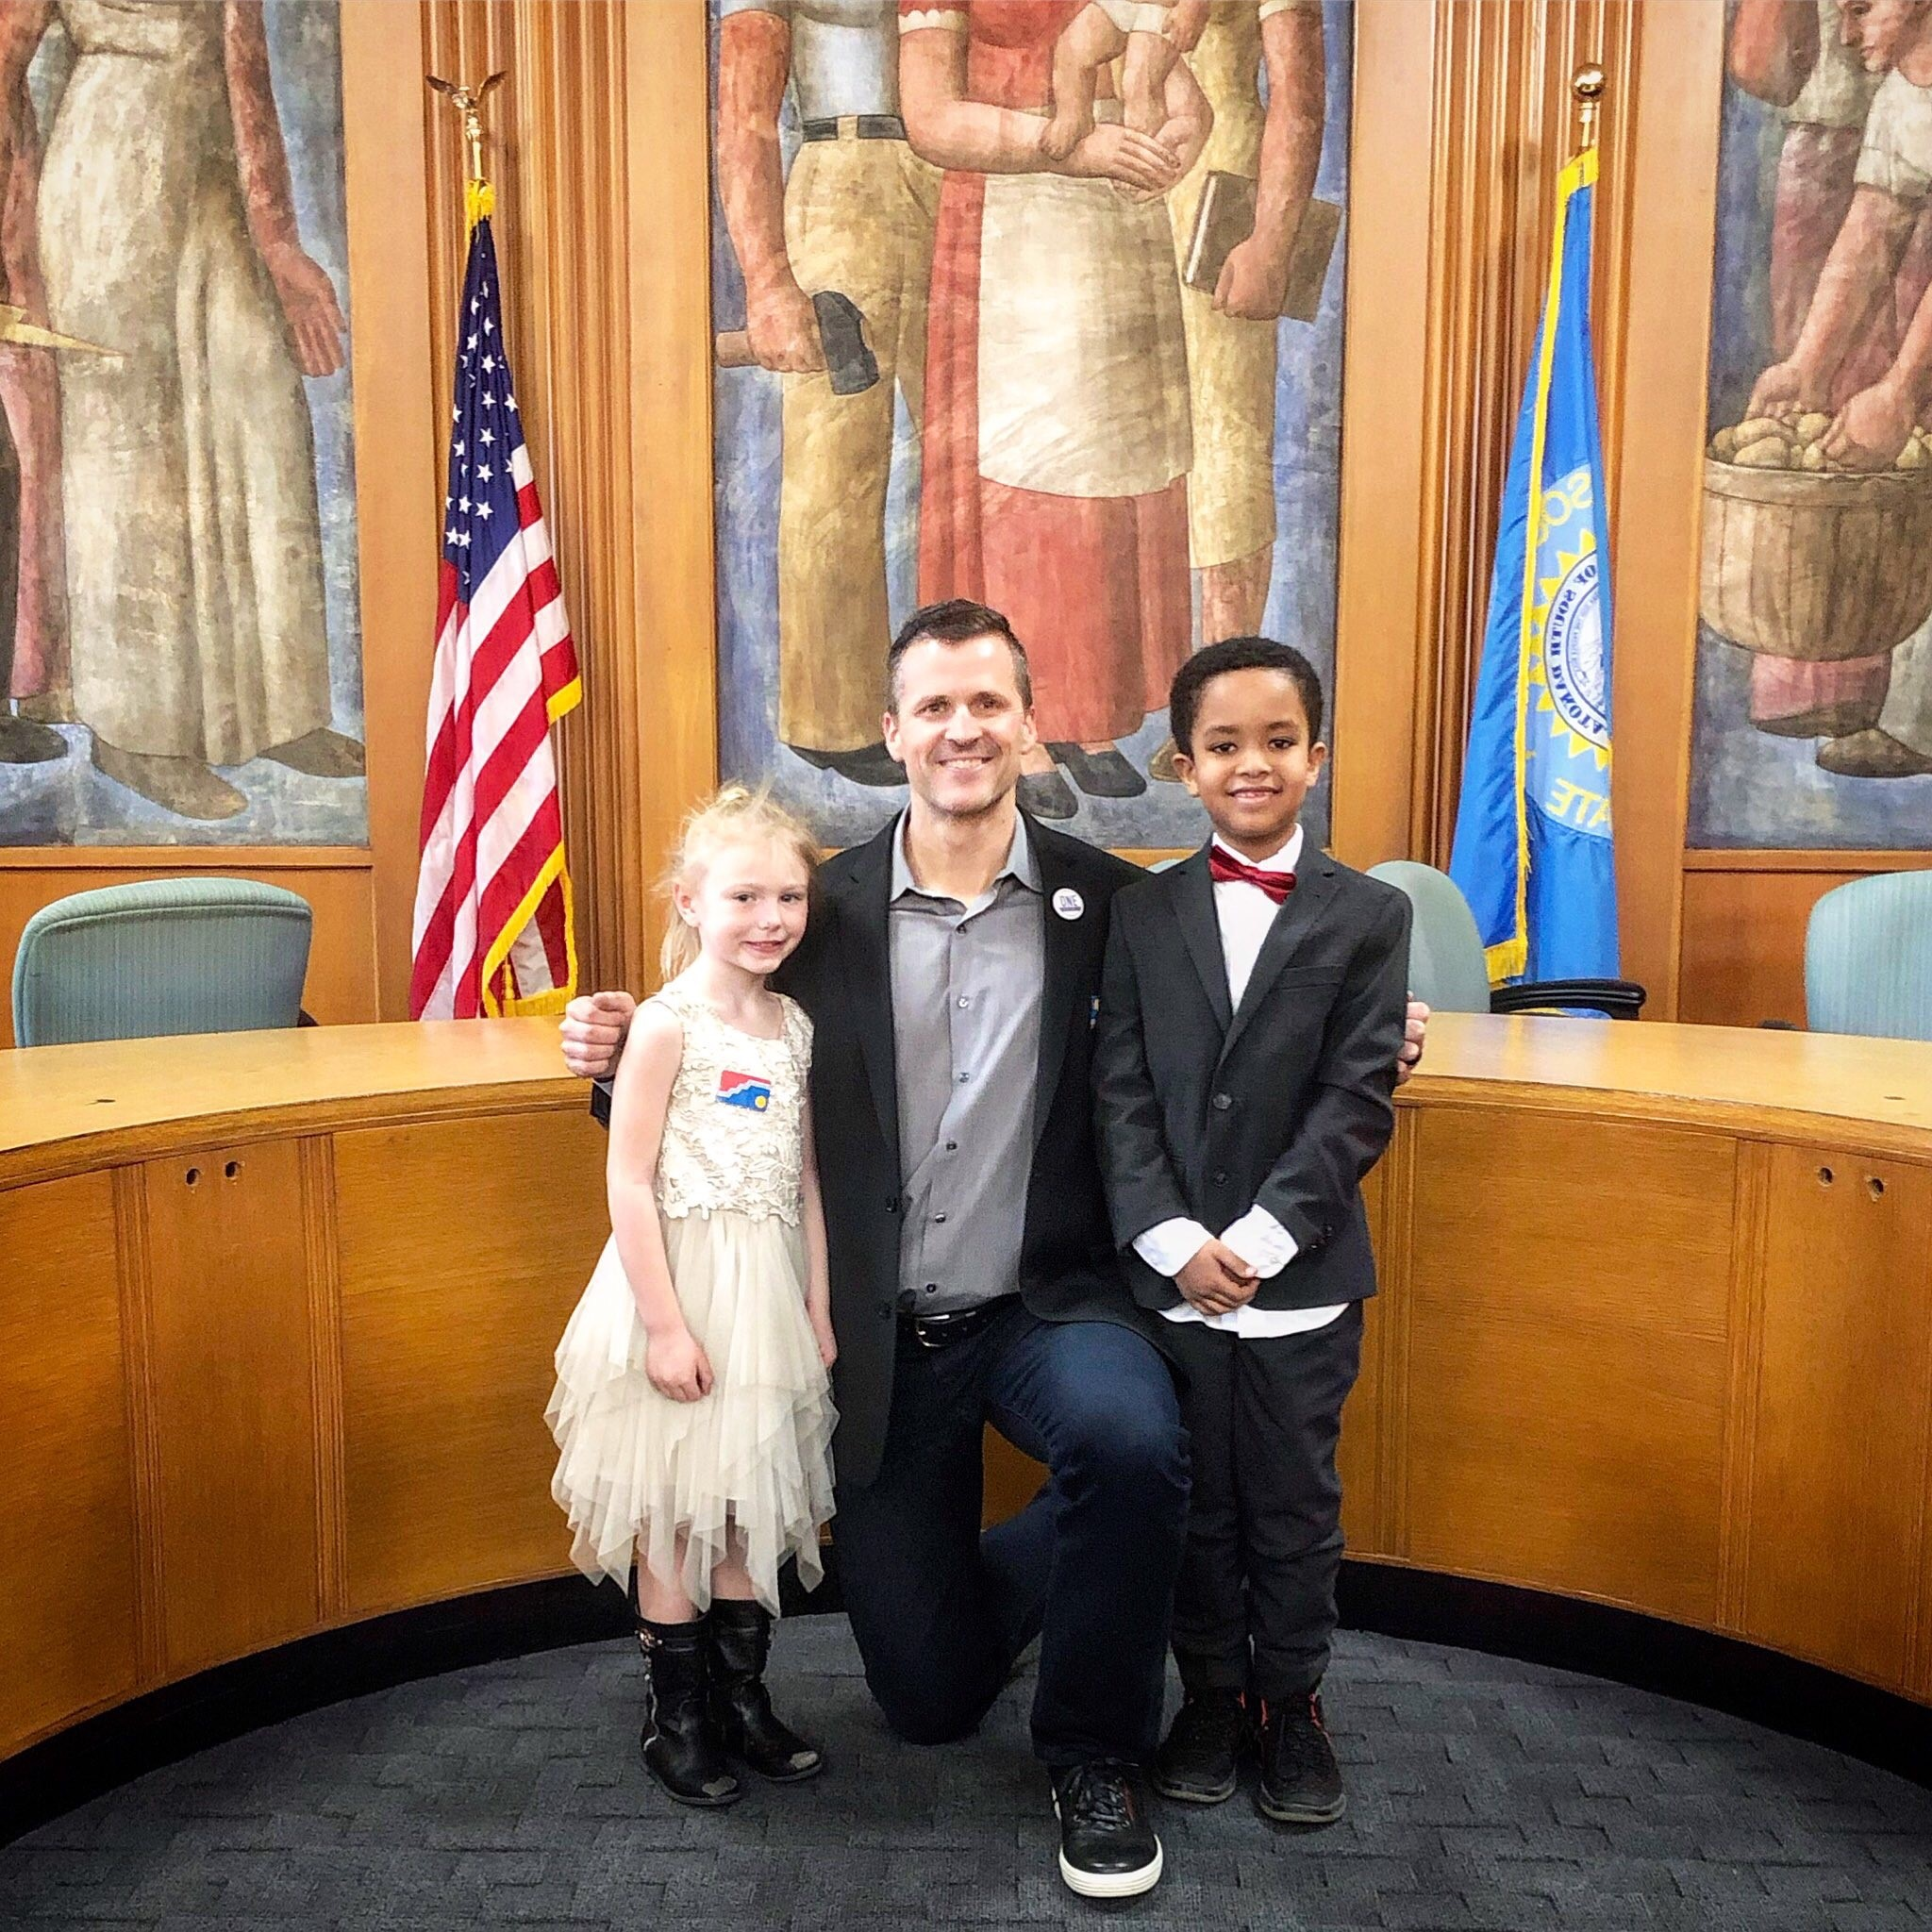 Mayor Paul TenHaken with Kids